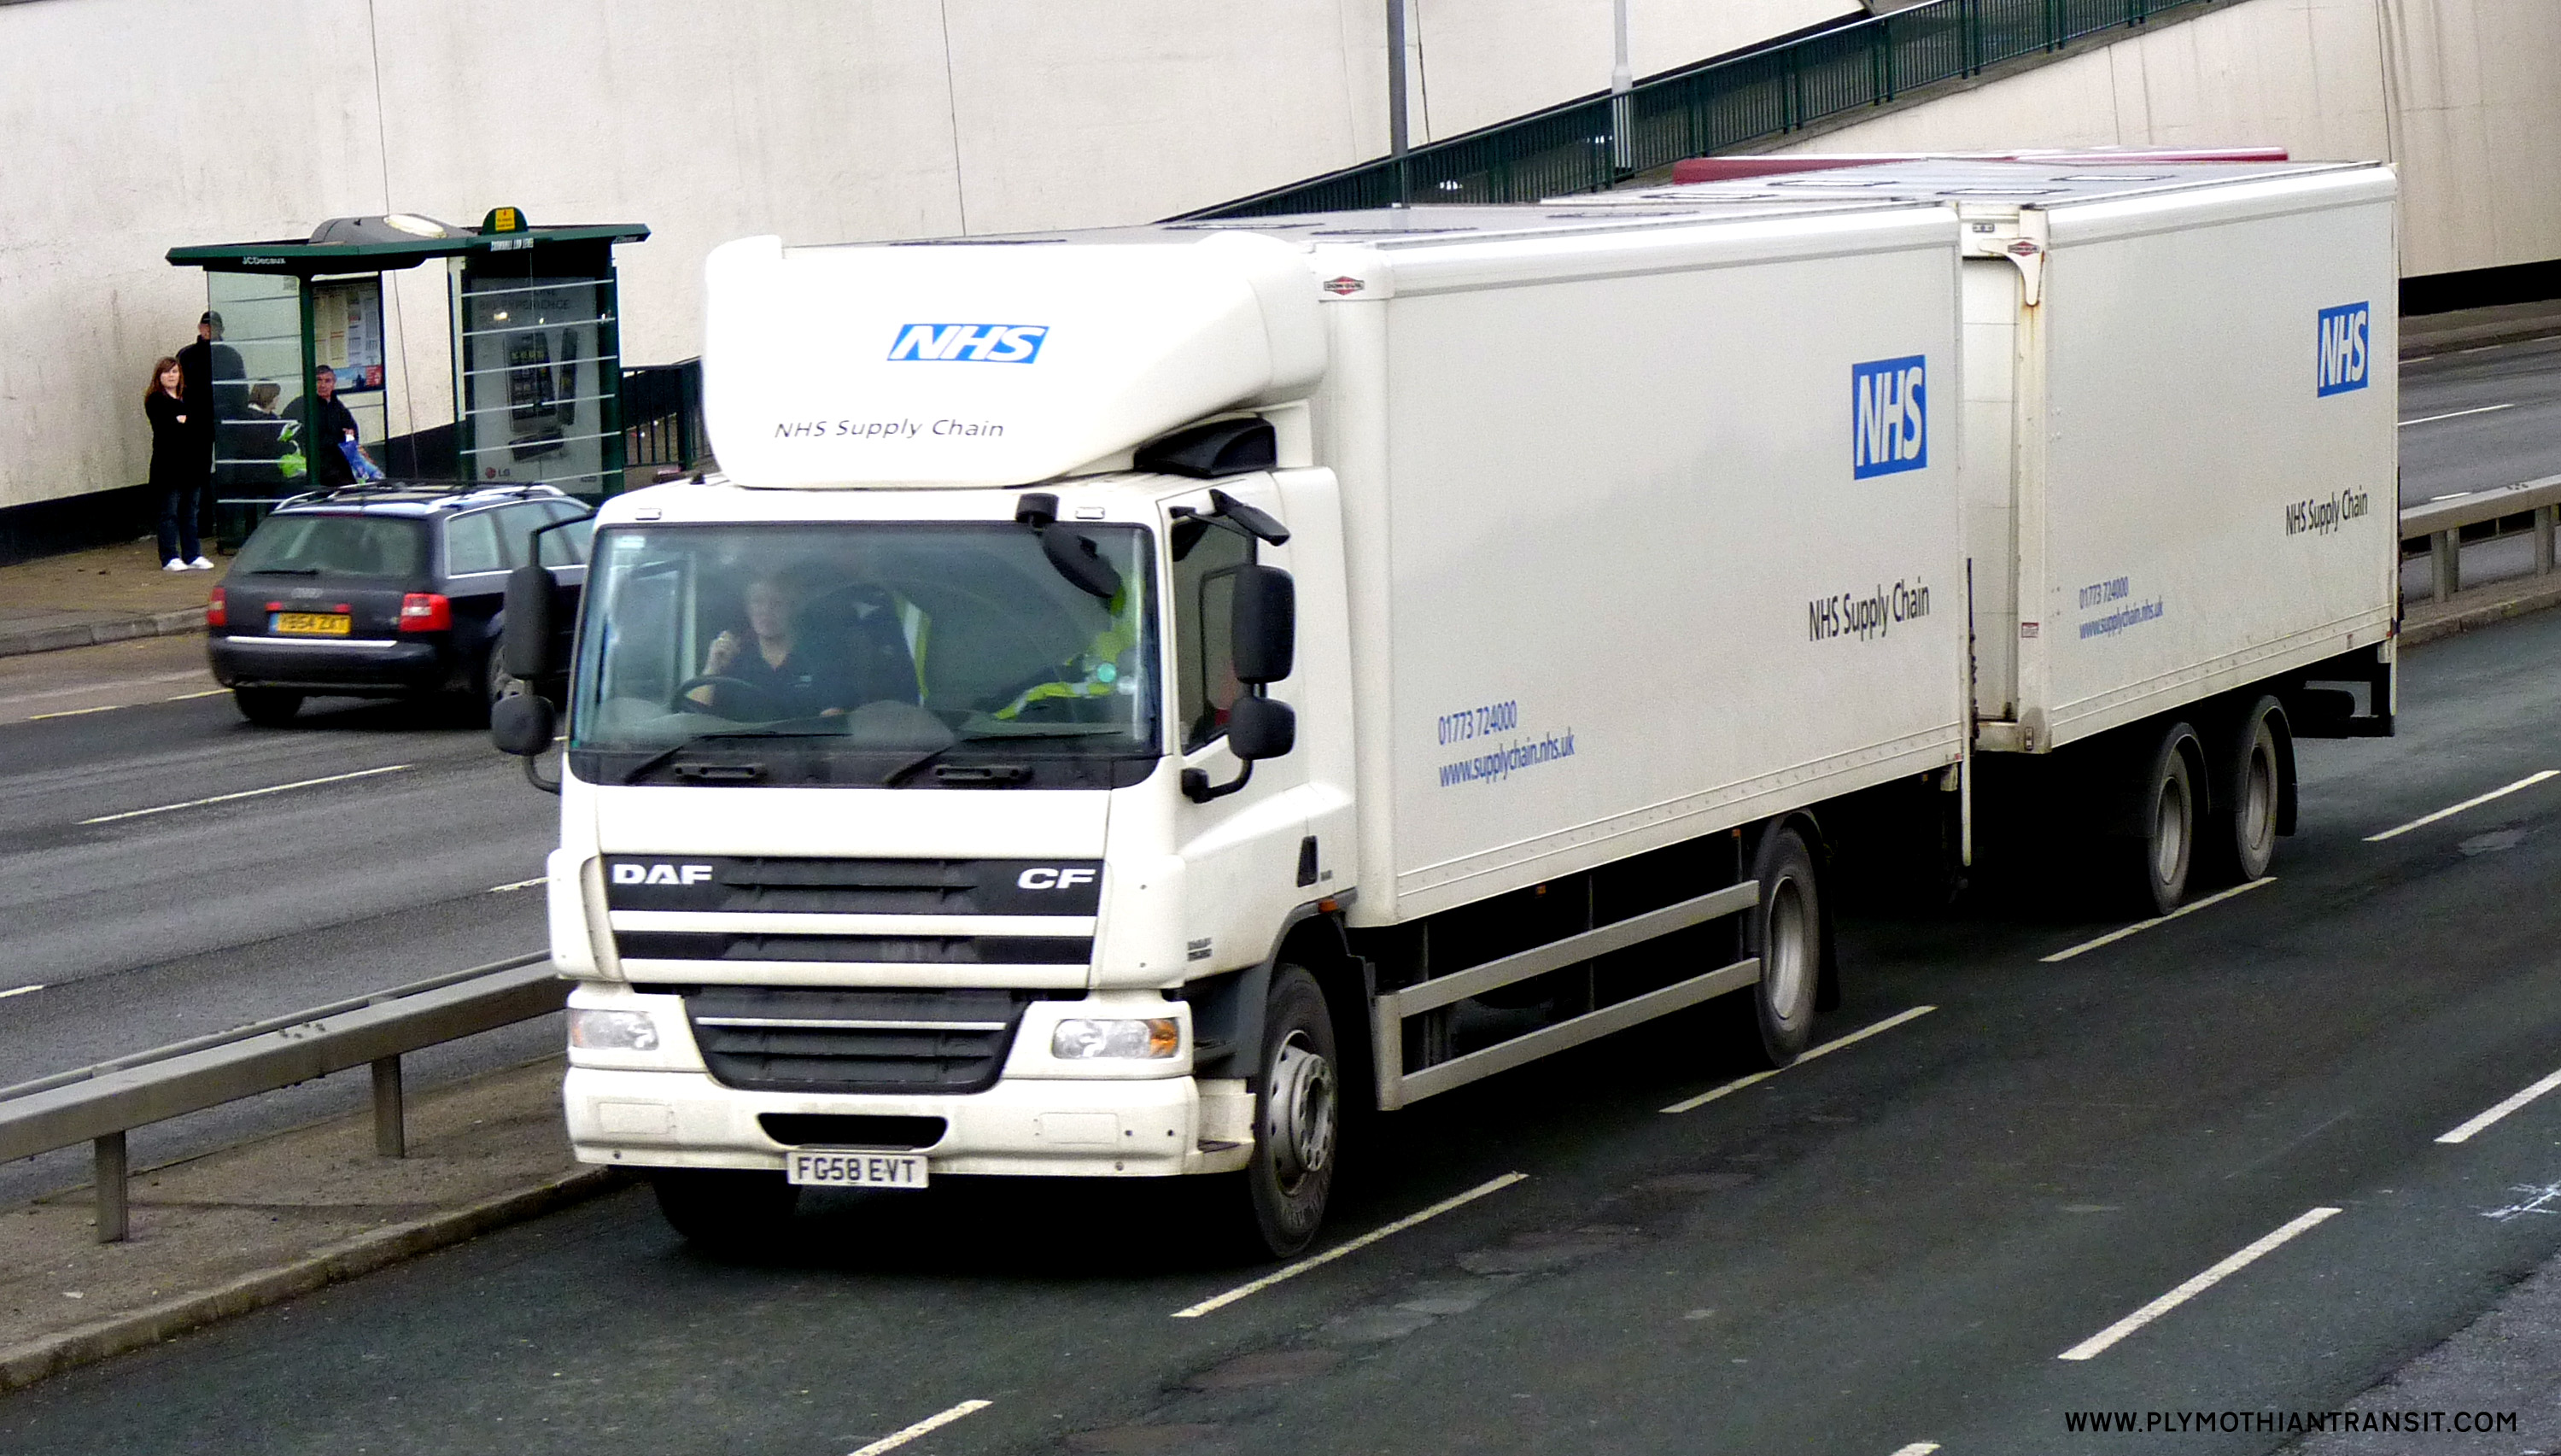 File Nhs Supply Chain Fg58evt Jpg Wikimedia Commons